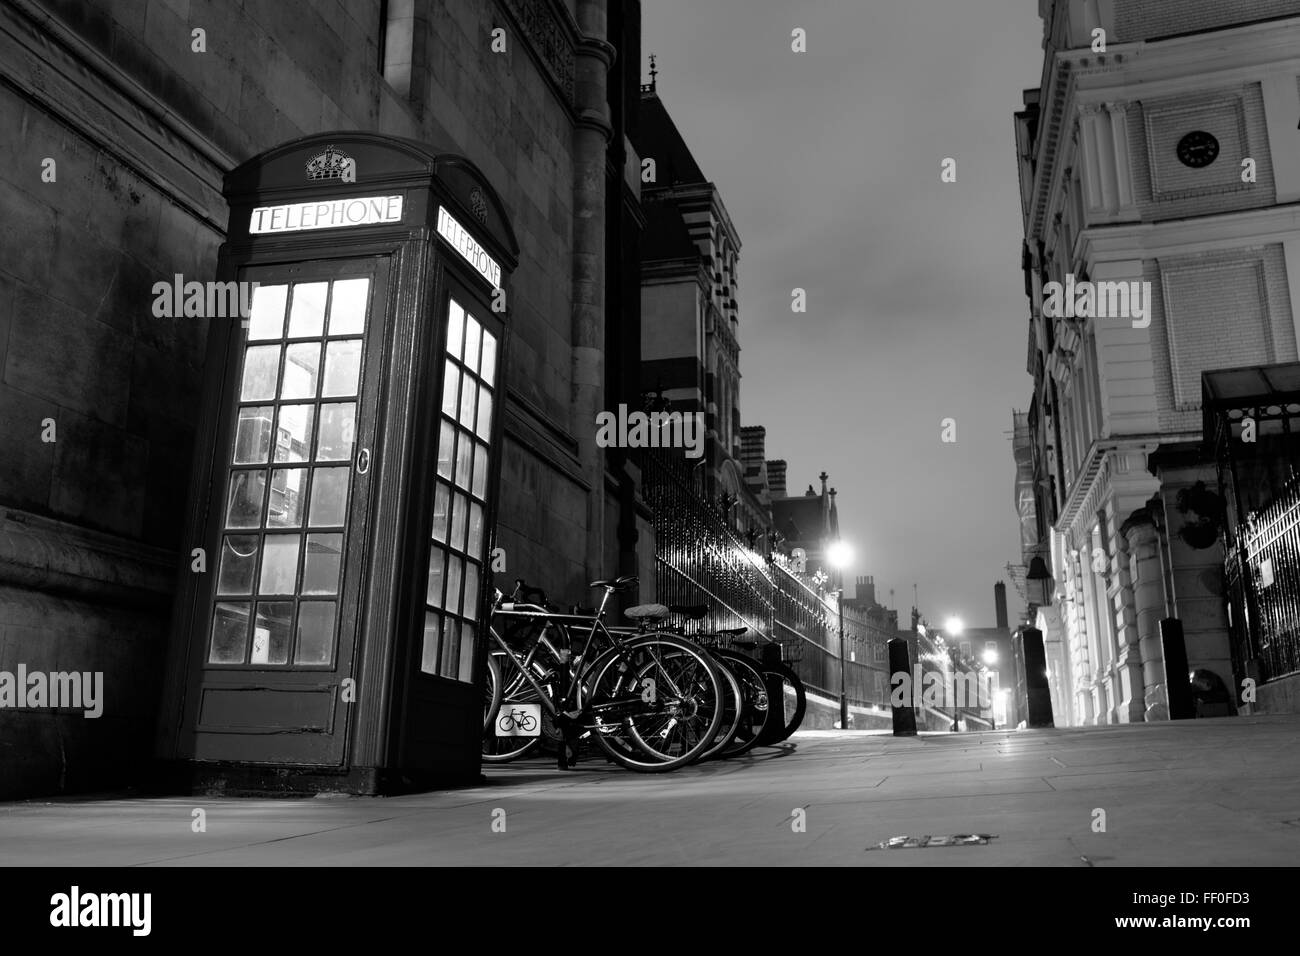 A lonely phone box booth in London sits quietly during this beautiful night scene. - Stock Image